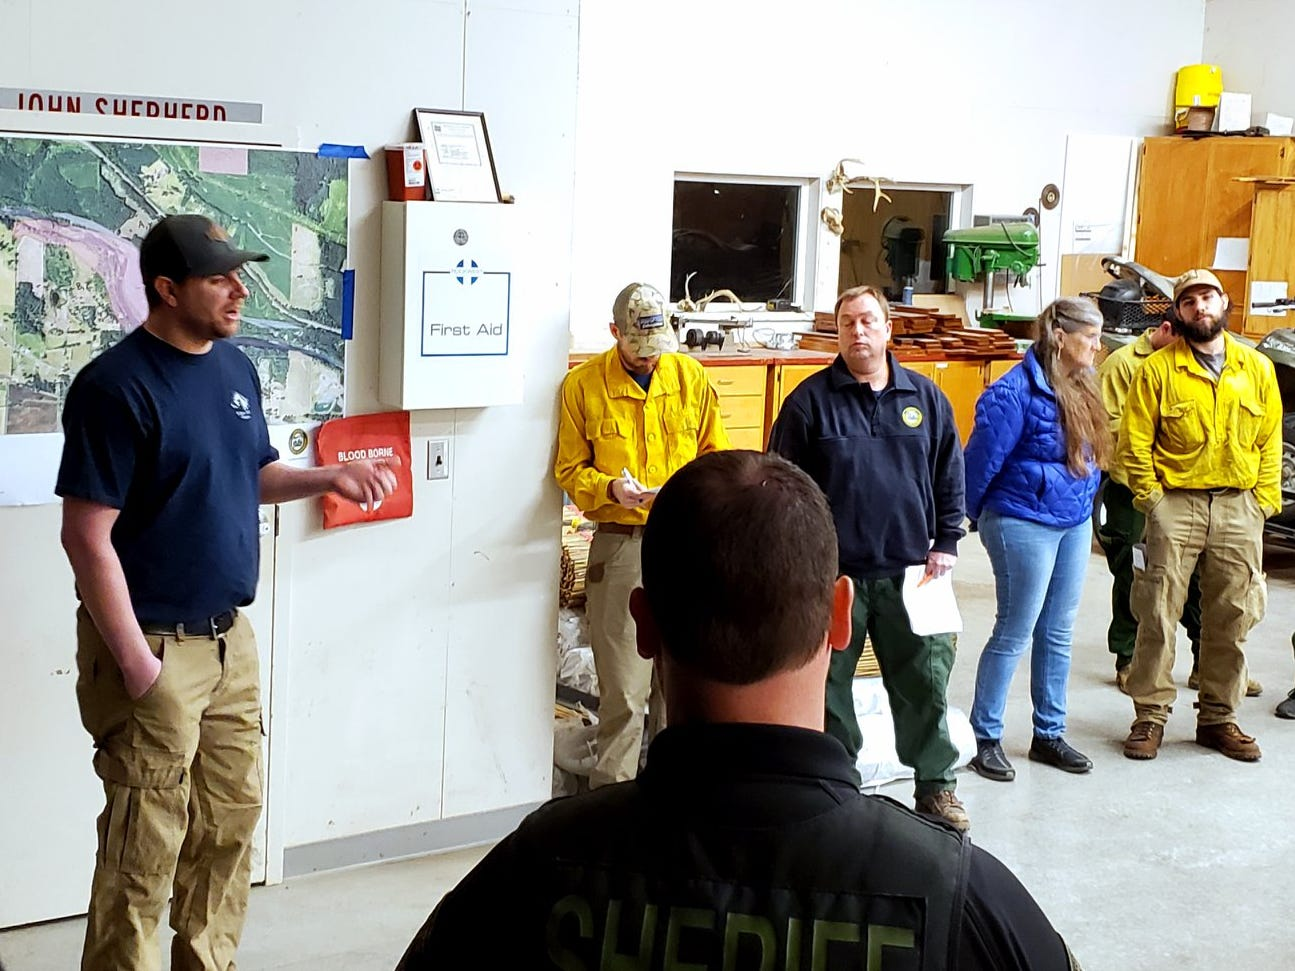 Responders attend a morning briefing for the Santiam Park Fire Wednesday morning. About 75 personnel are on scene to battle the blaze on March 20, 2019.